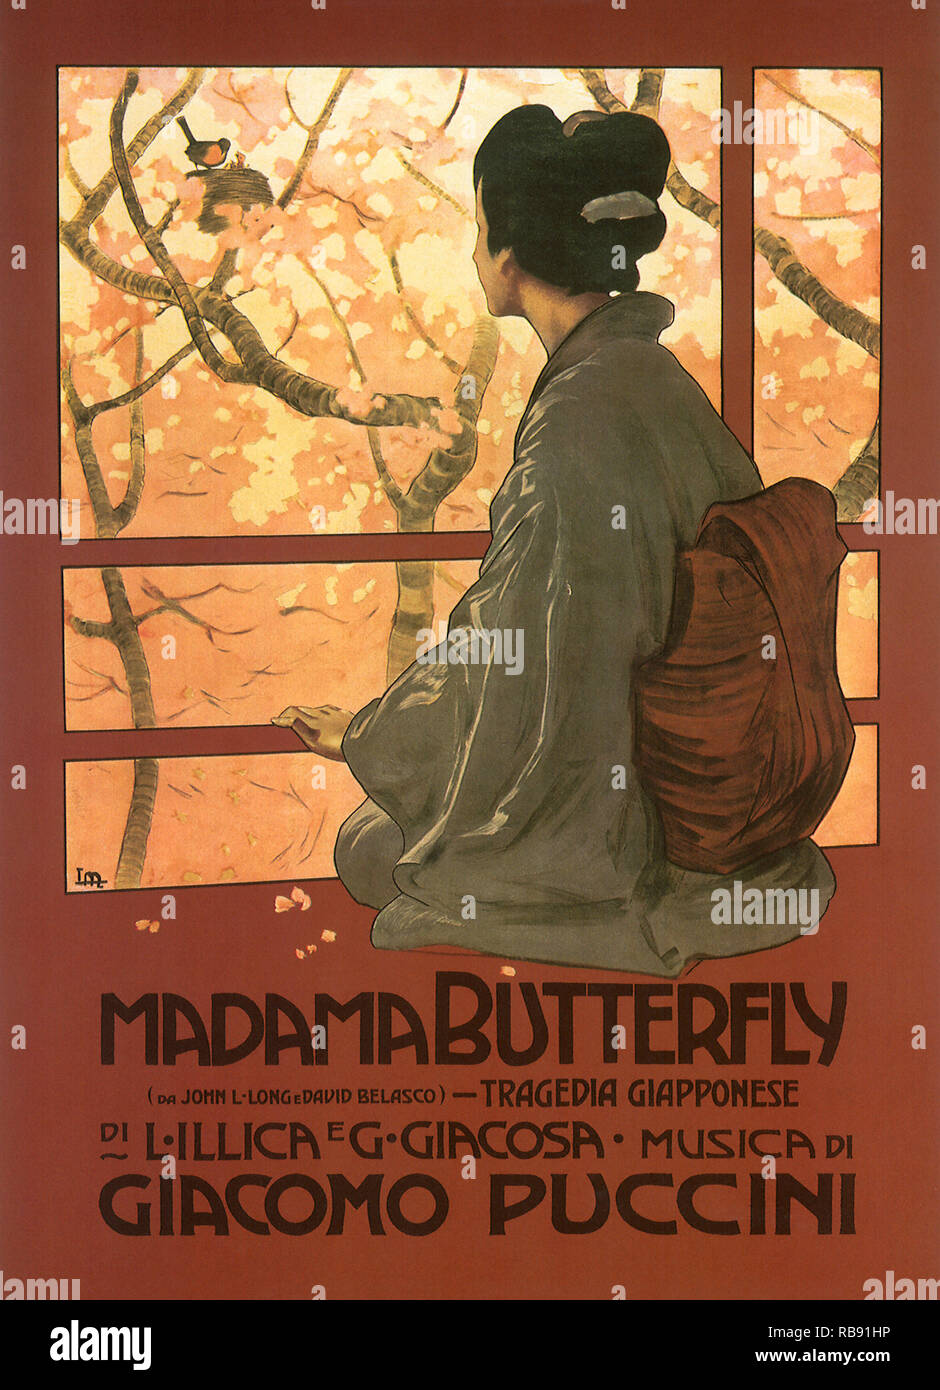 Madame Butterfly Poster Foto Stock